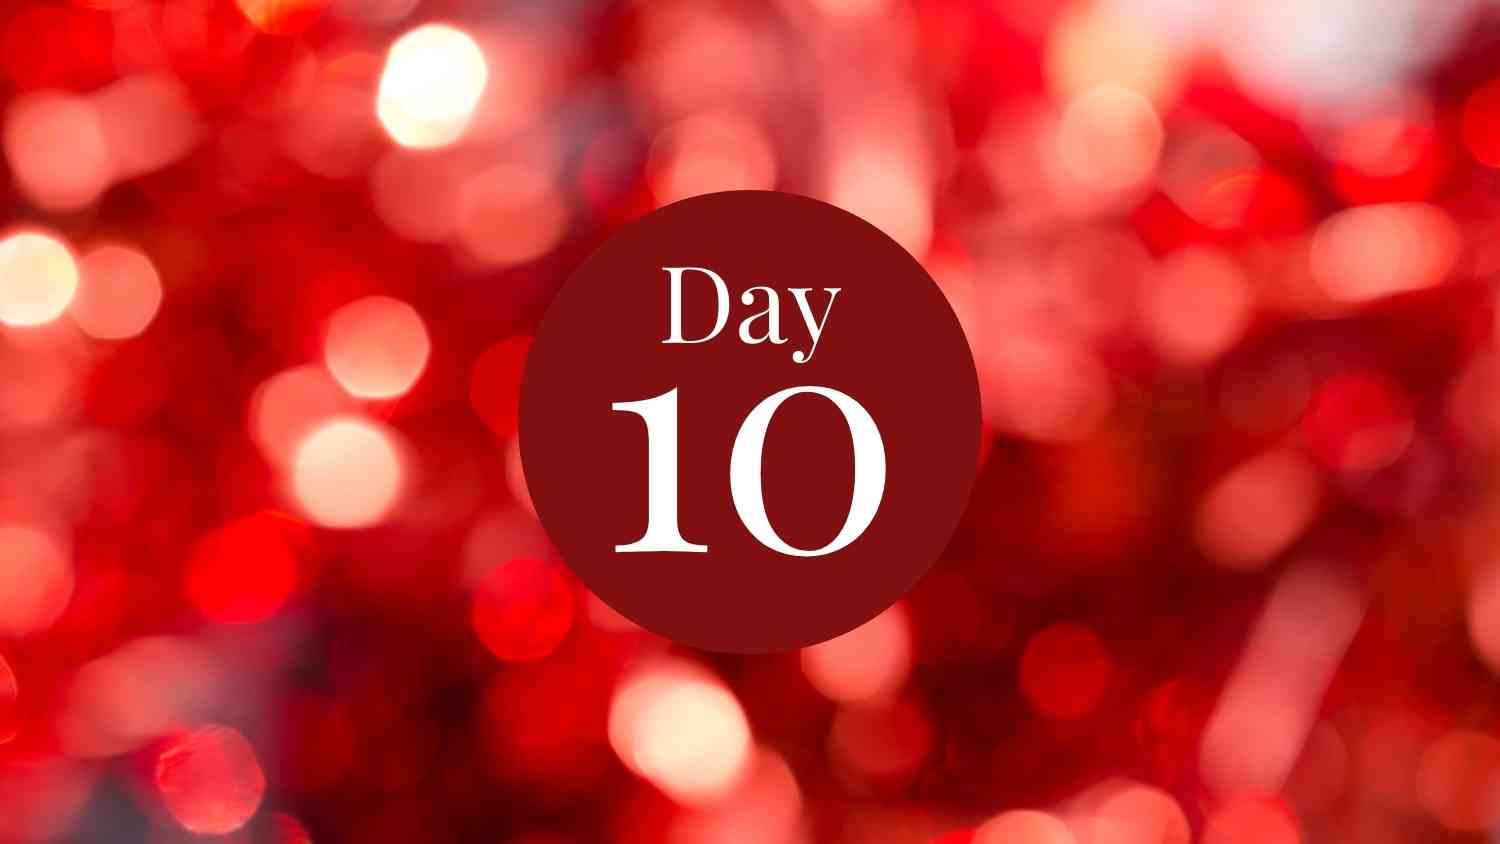 12 days of fitness day 10